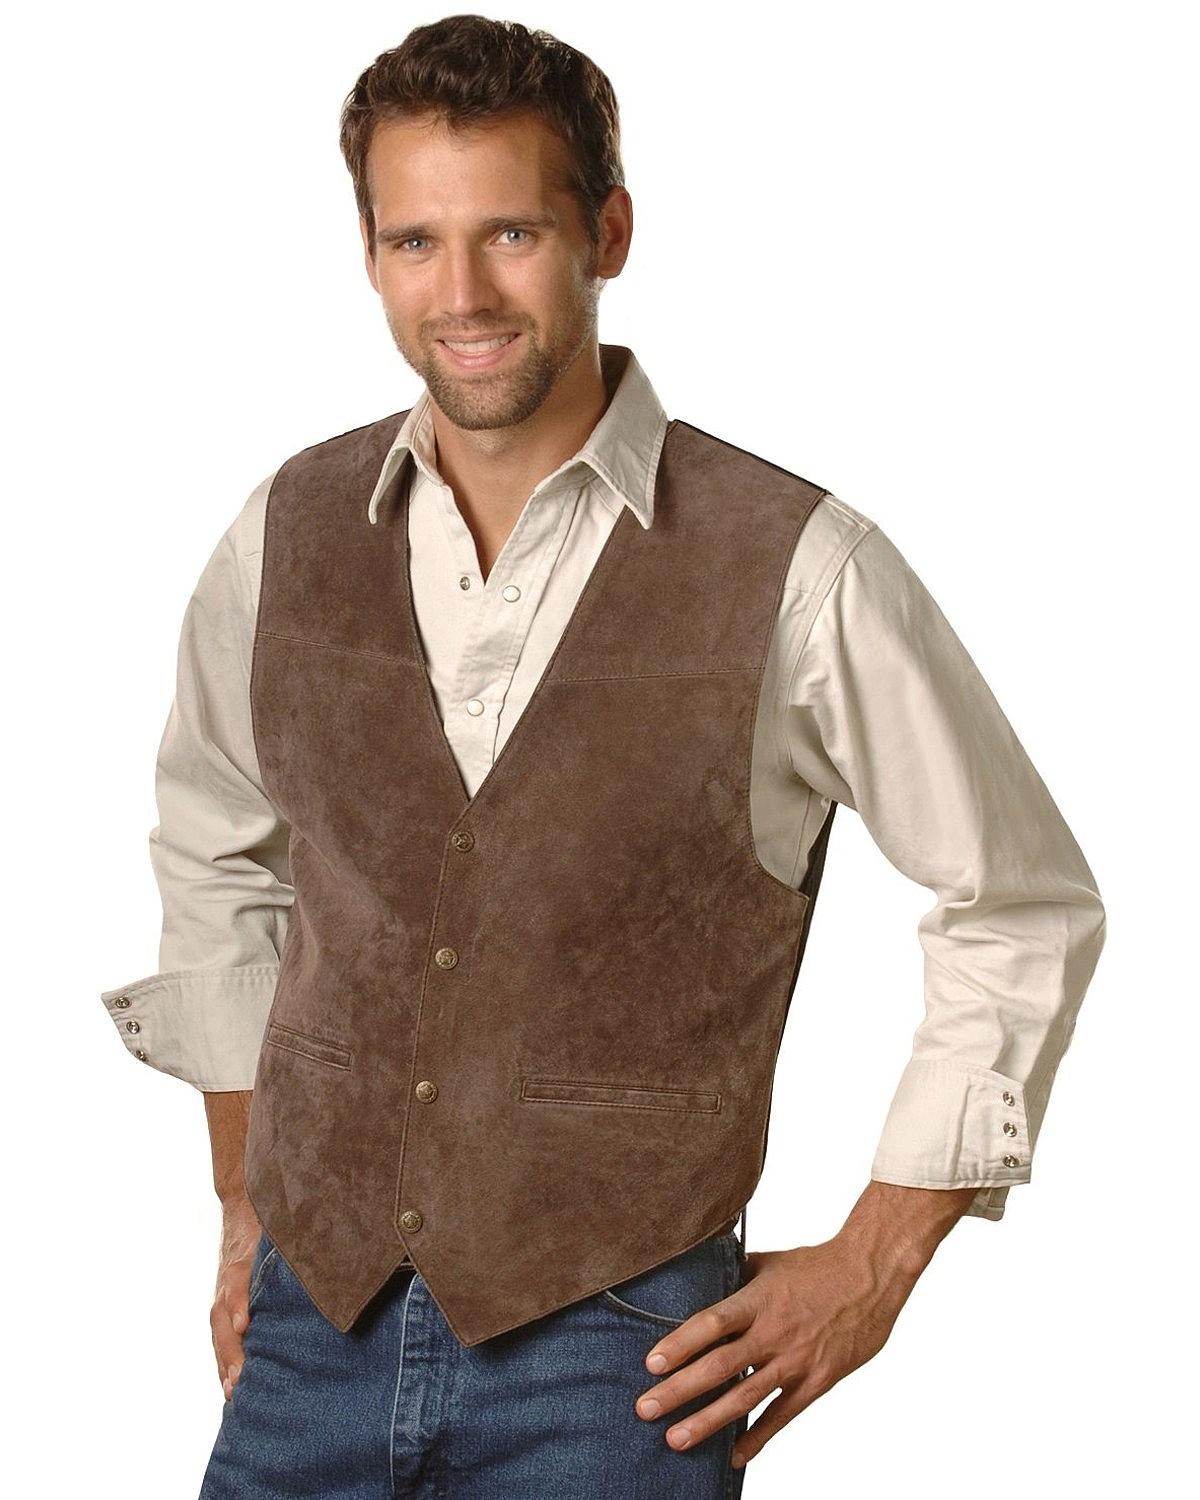 The Men's Zippered Touring Vest is the perfect vest for motorcycle riders to display patches. The back panel on a size 40 is 17